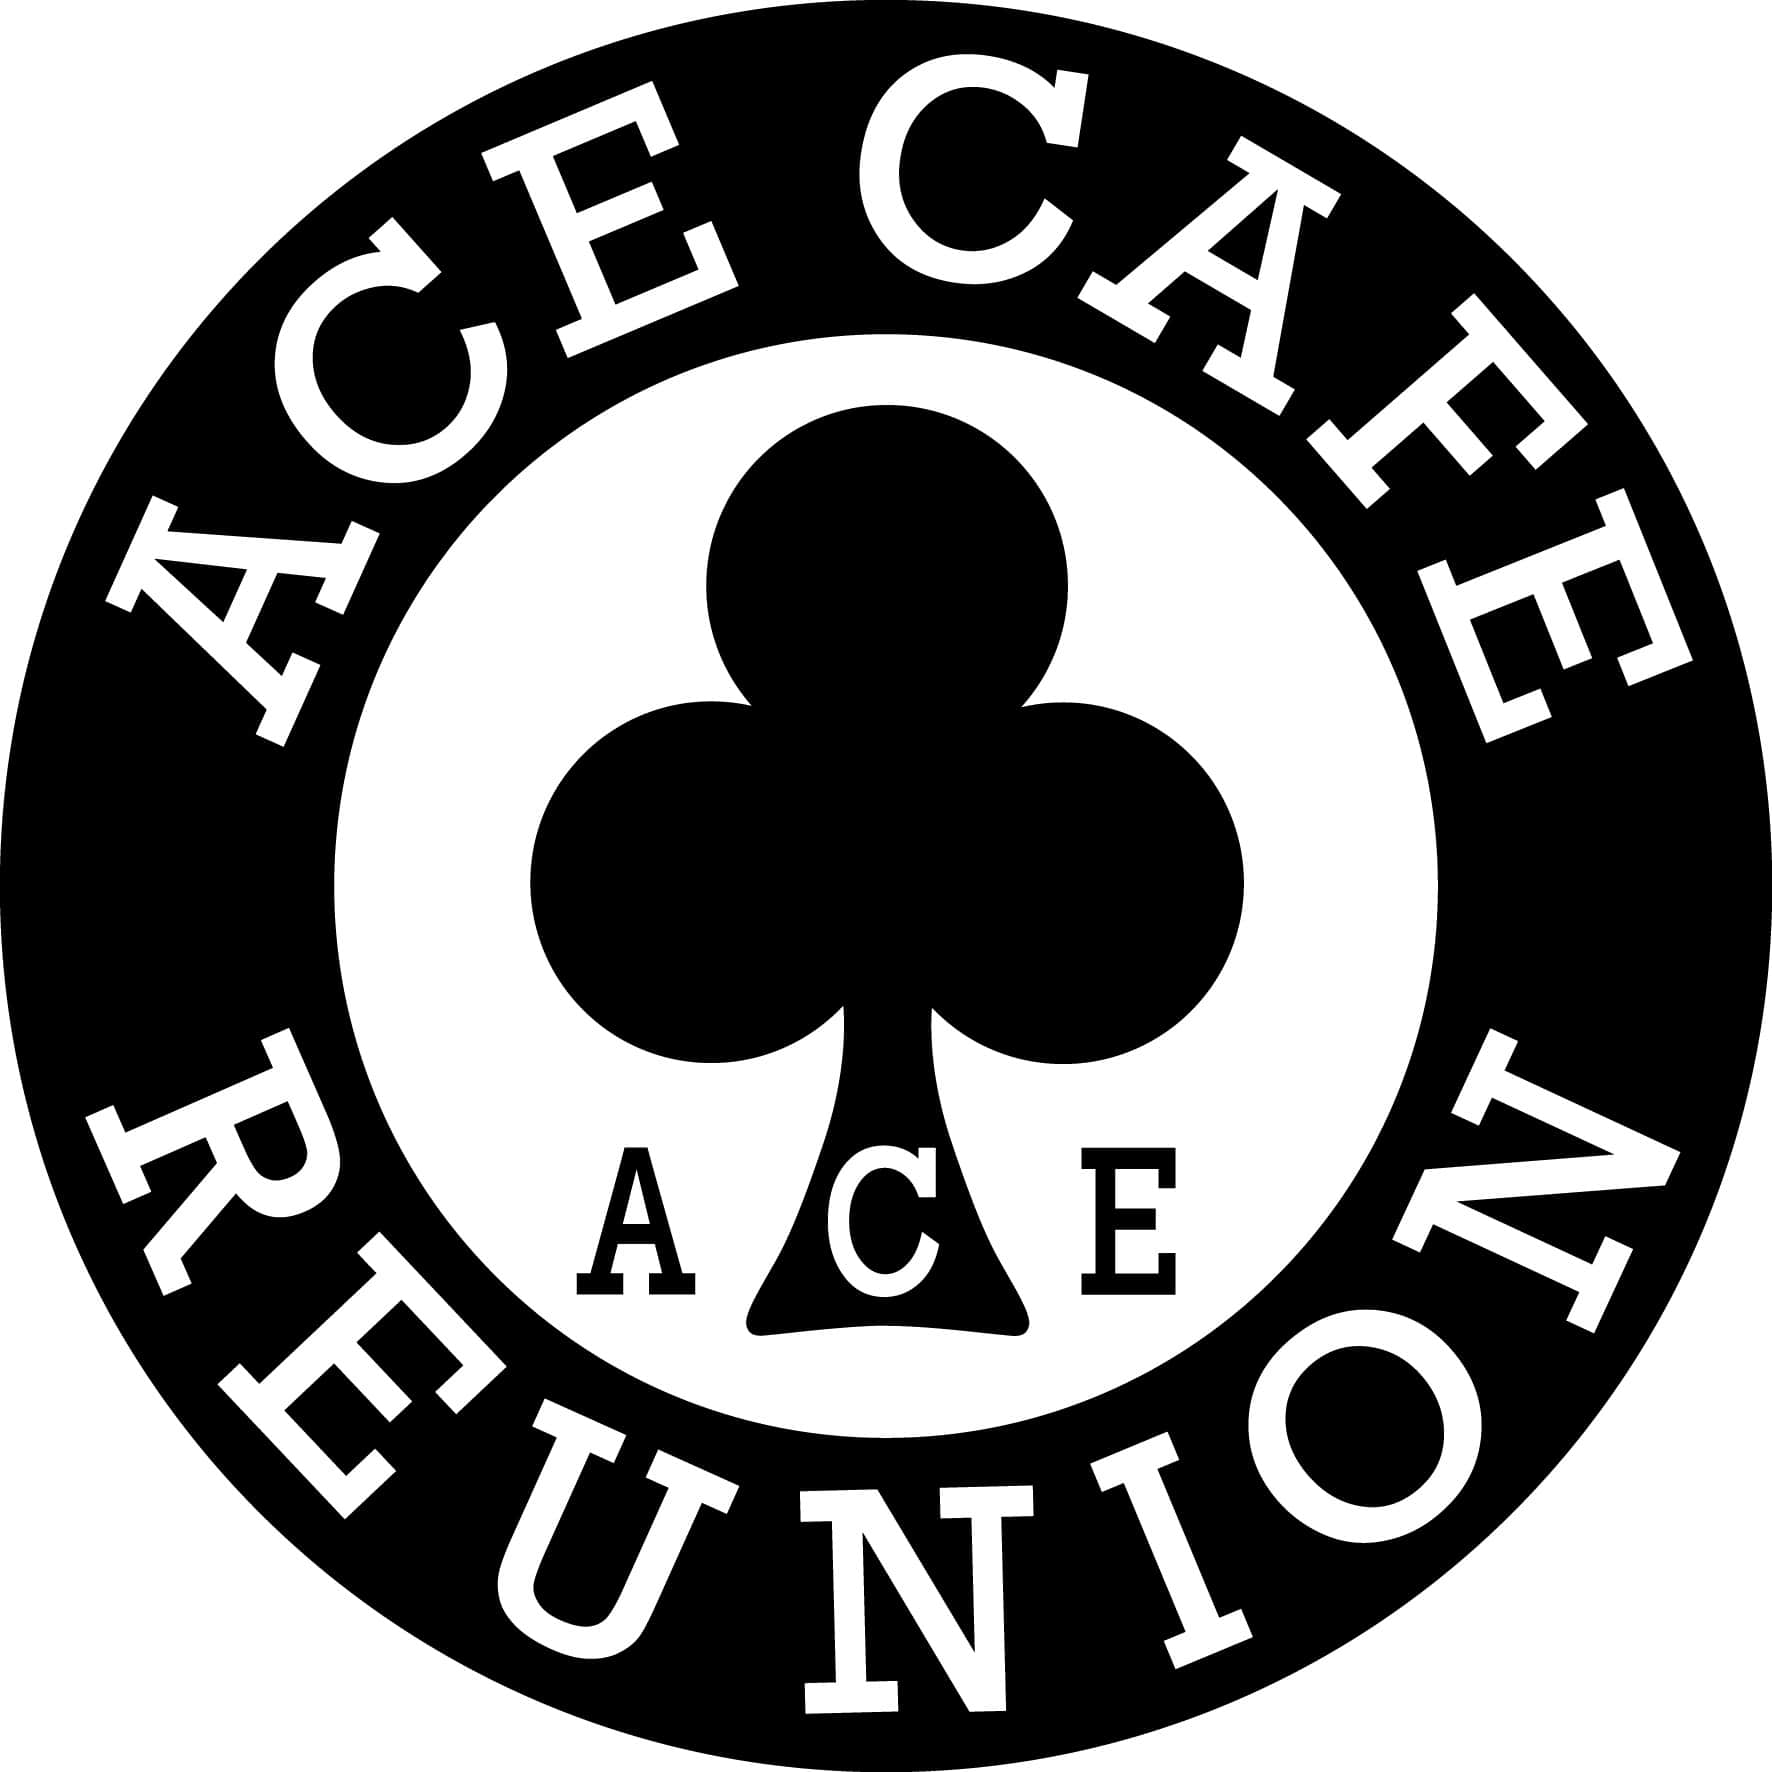 The 24th annual Ace Cafe Reunion Friday 8th and Saturday 9th September 2017  at the cafe. Sunday 10th September Brighton Burn Up Three Days, Three  Rides, PlusPng.com  - Ace Cafe London Logo PNG